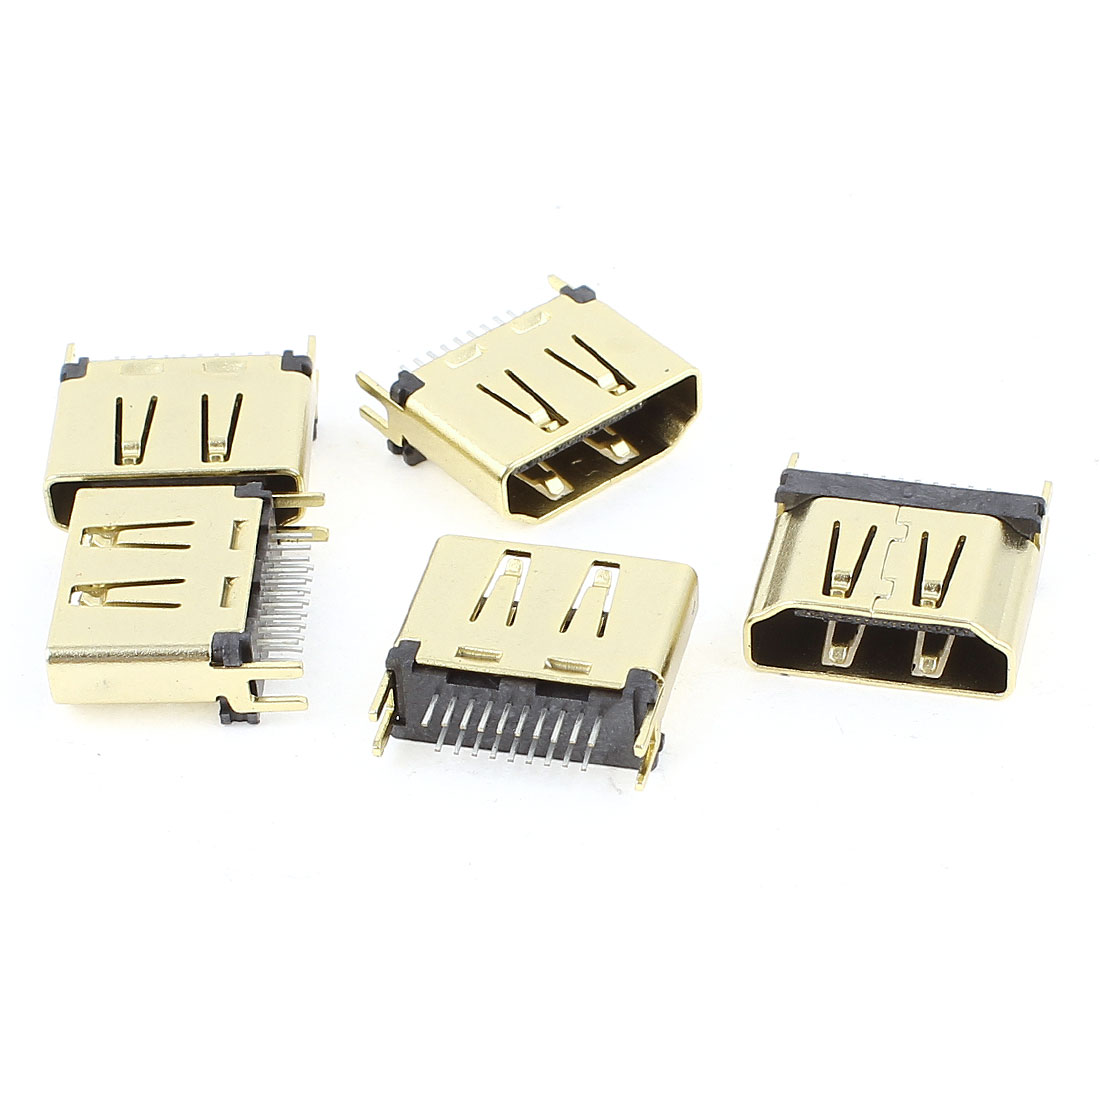 5pcs 1.6mm Spacing Gold Tone 19Pin HDMI Female Connector SMT 180 Degree